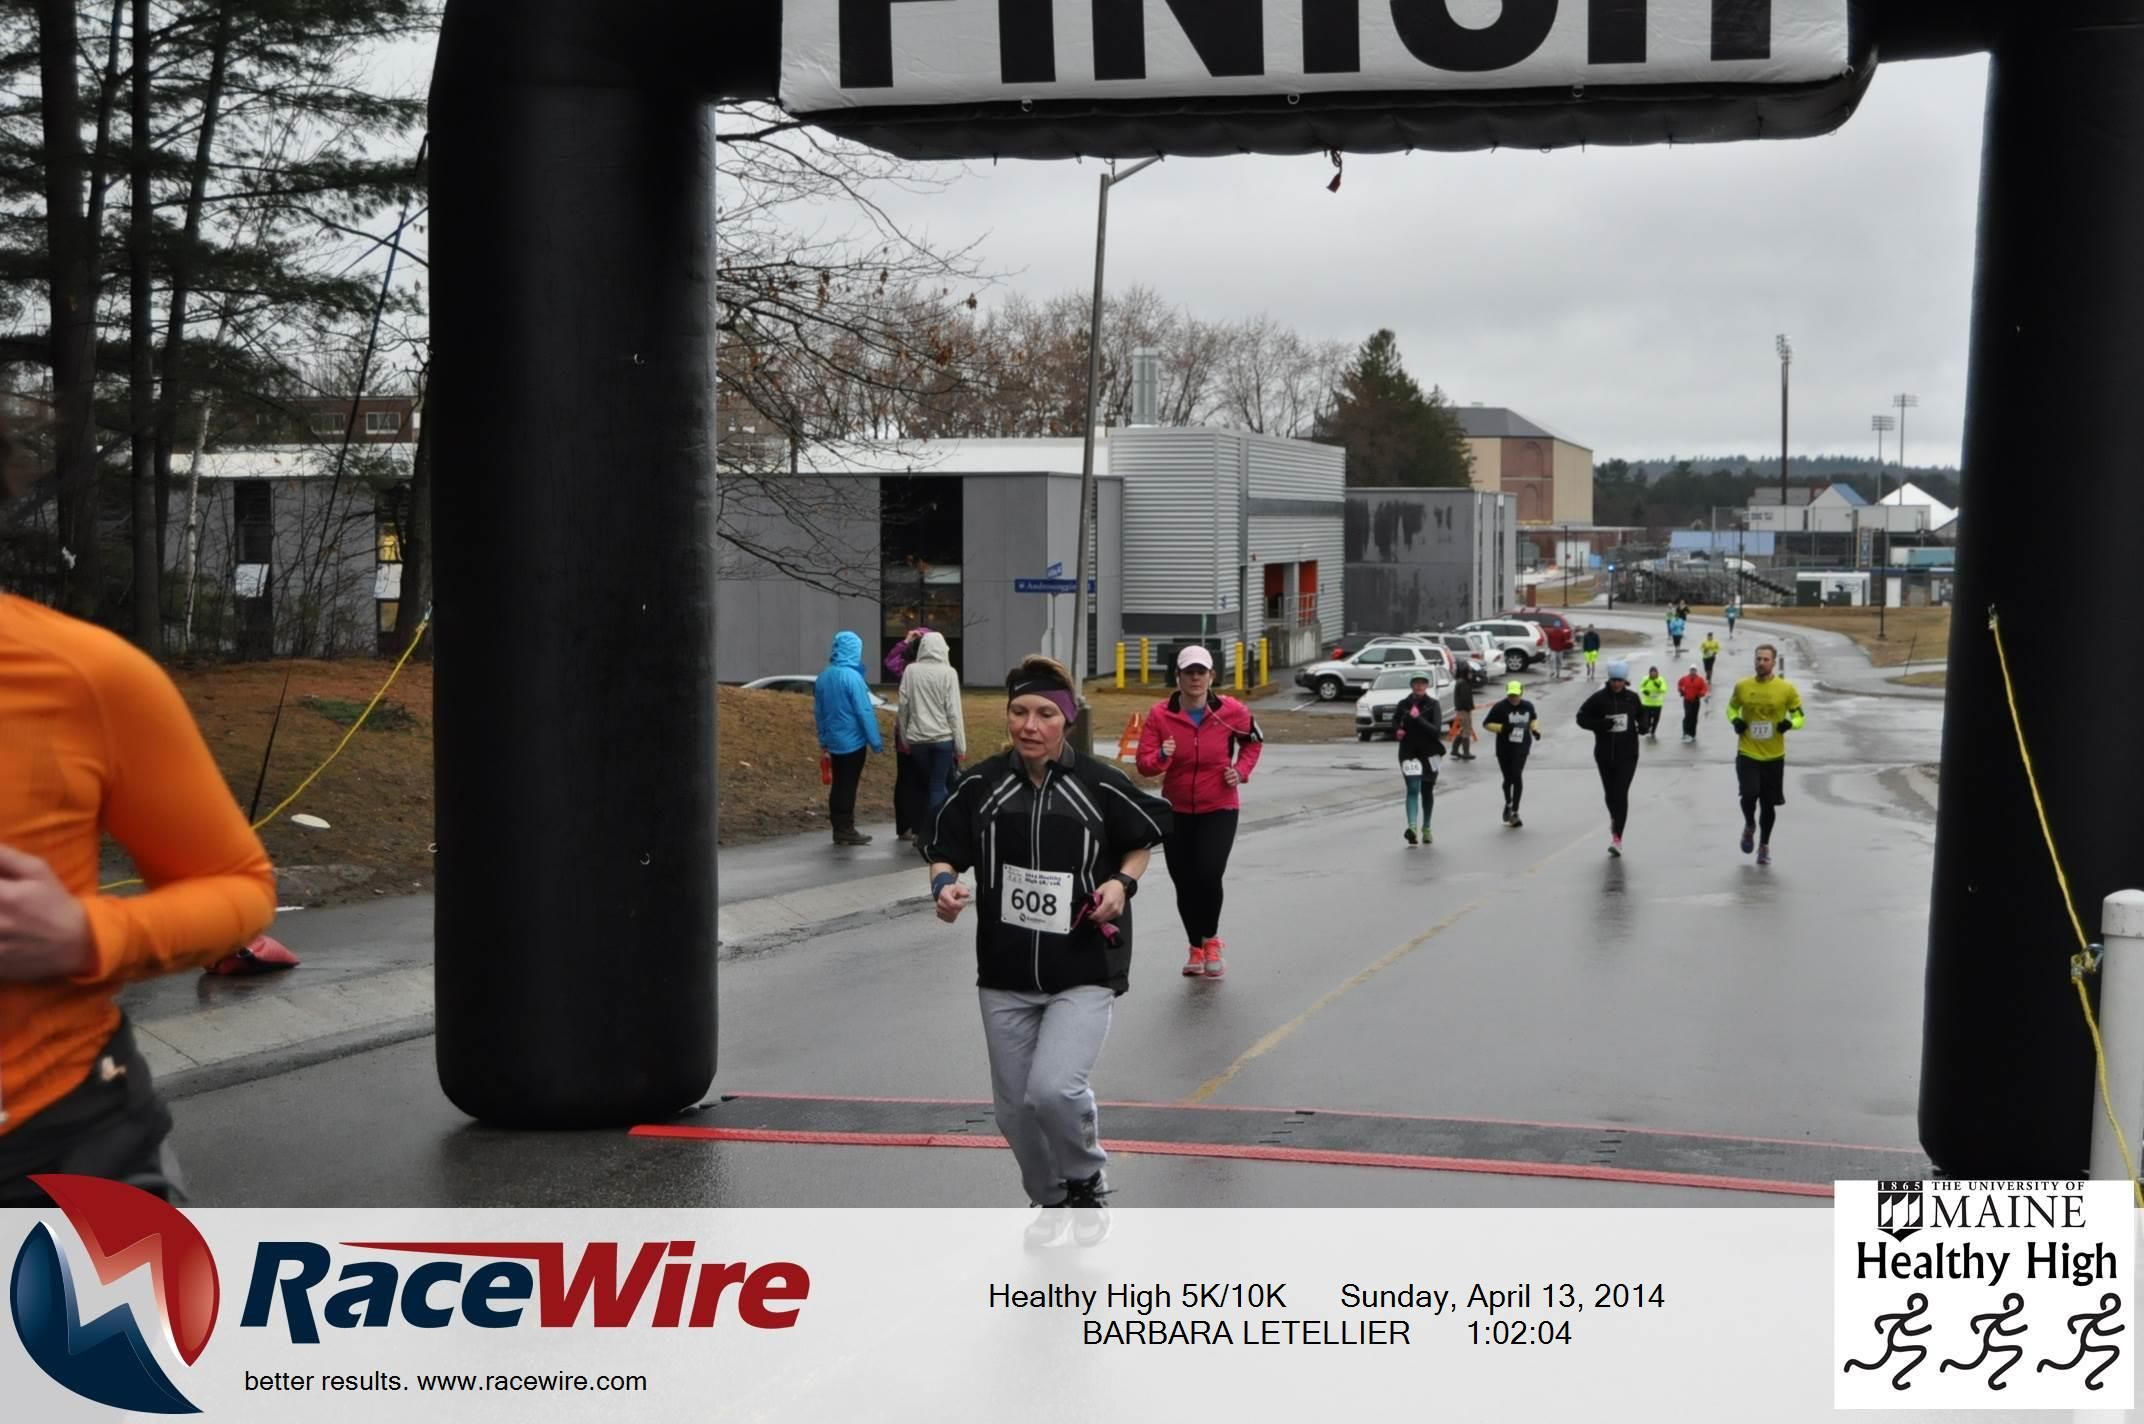 Photos of BARBARA LETELLIER from Race Healthy High 5K/10K on Sunday, April 13, 2014